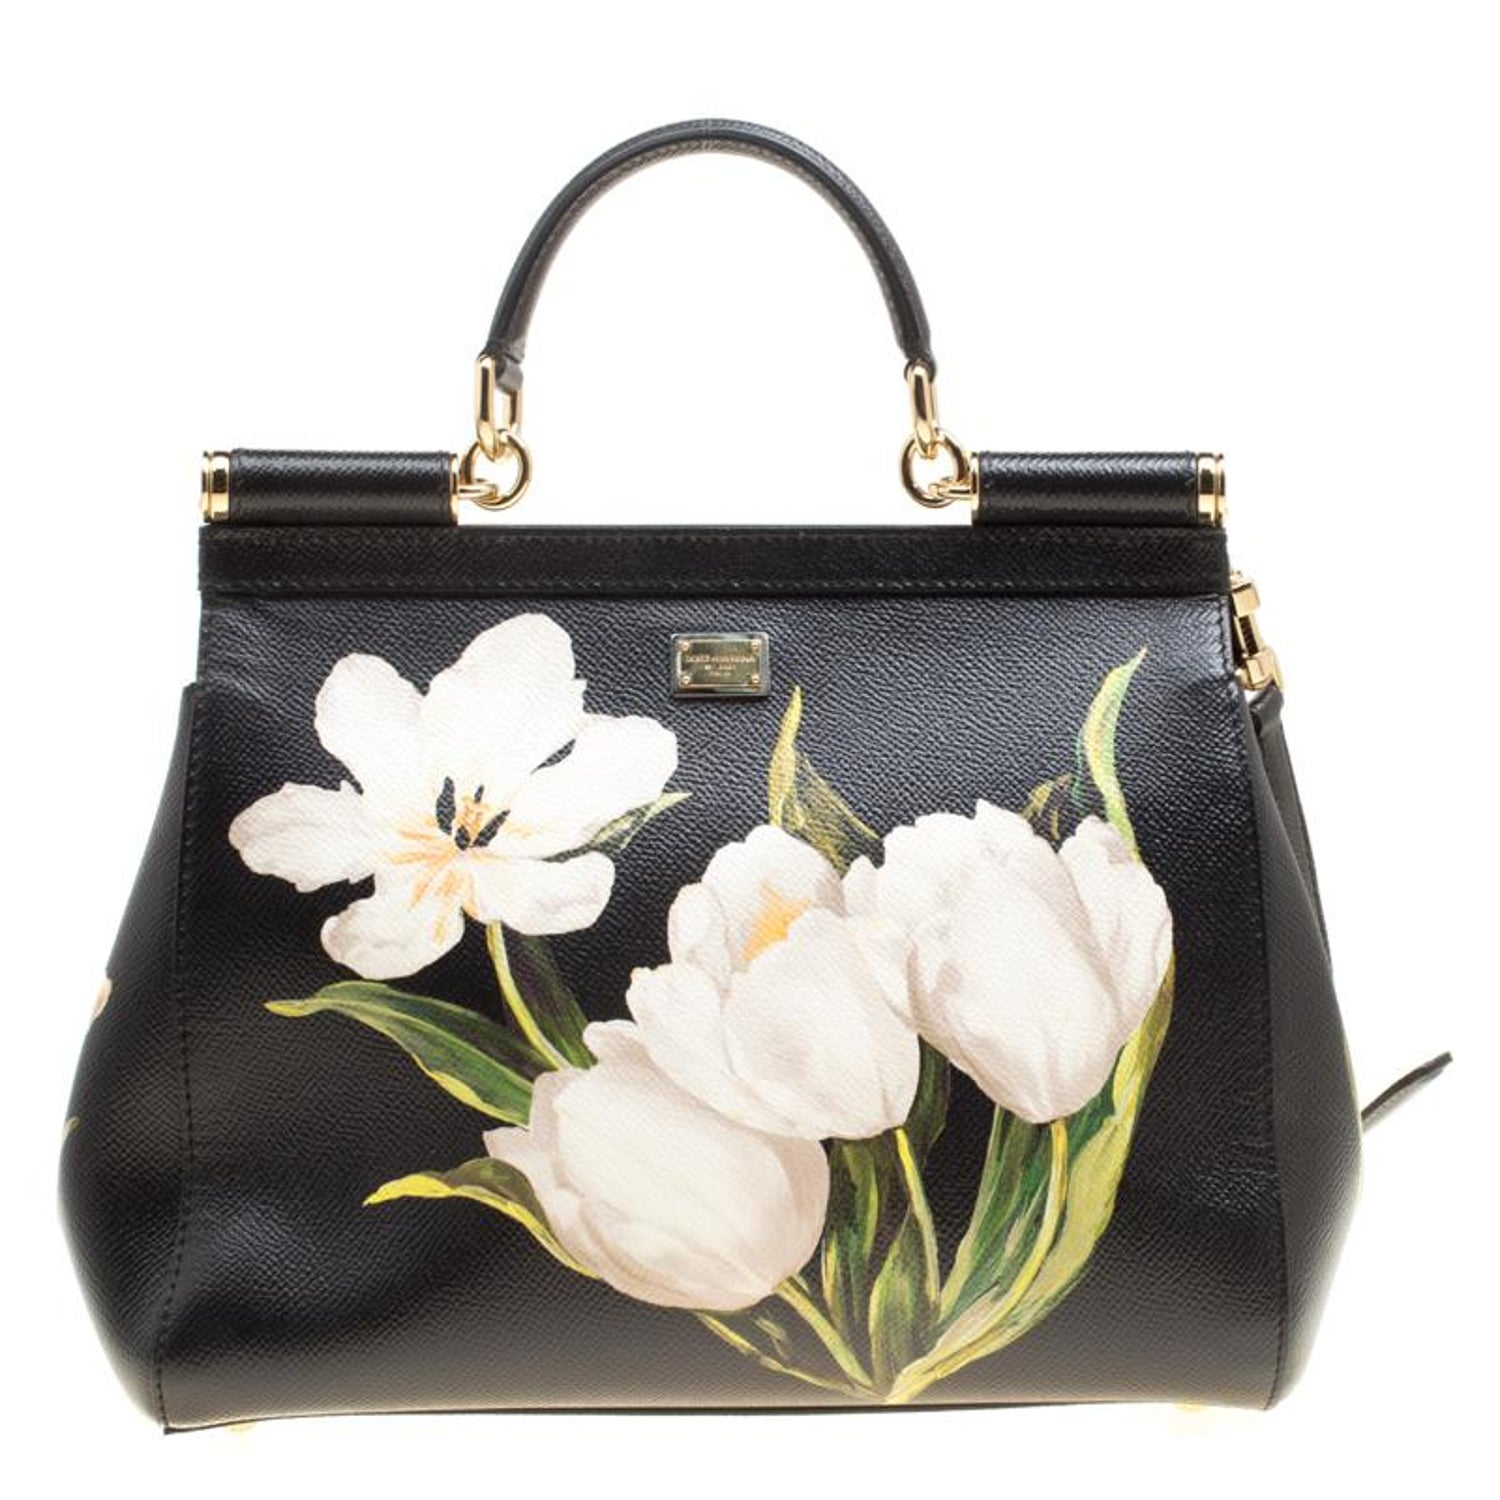 Dolce and Gabbana Black Multicolor Tulip Print Leather Medium Miss Sicily  Top Ha For Sale at 1stdibs 2155dd91d0ade